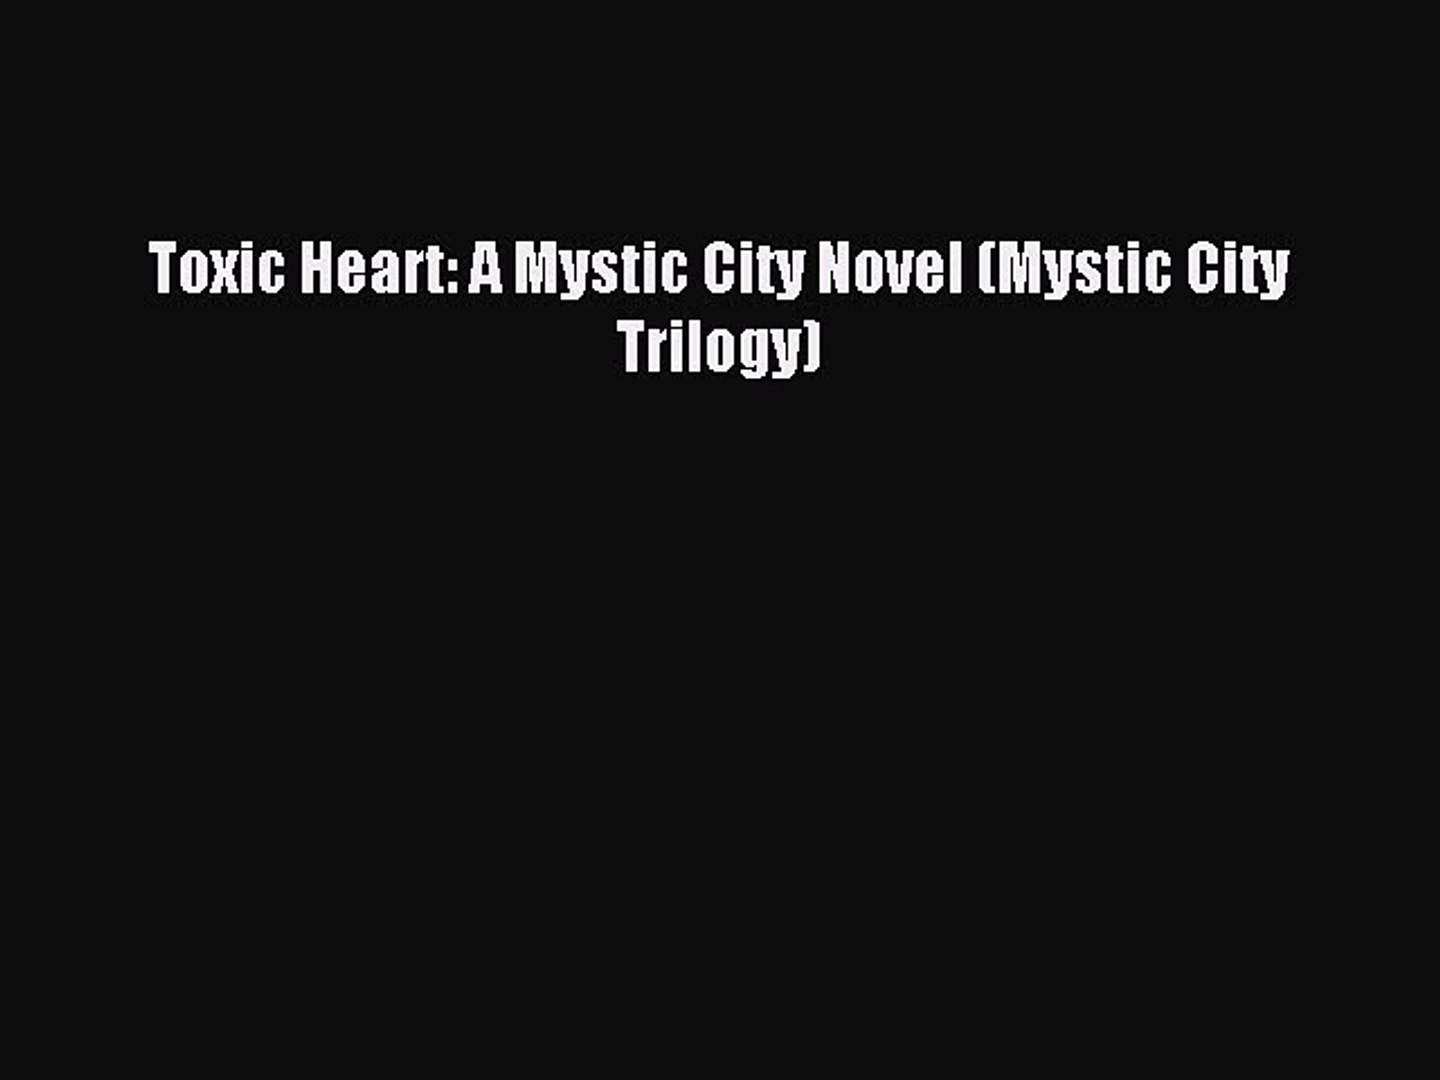 Read Toxic Heart: A Mystic City Novel (Mystic City Trilogy) Ebook Online